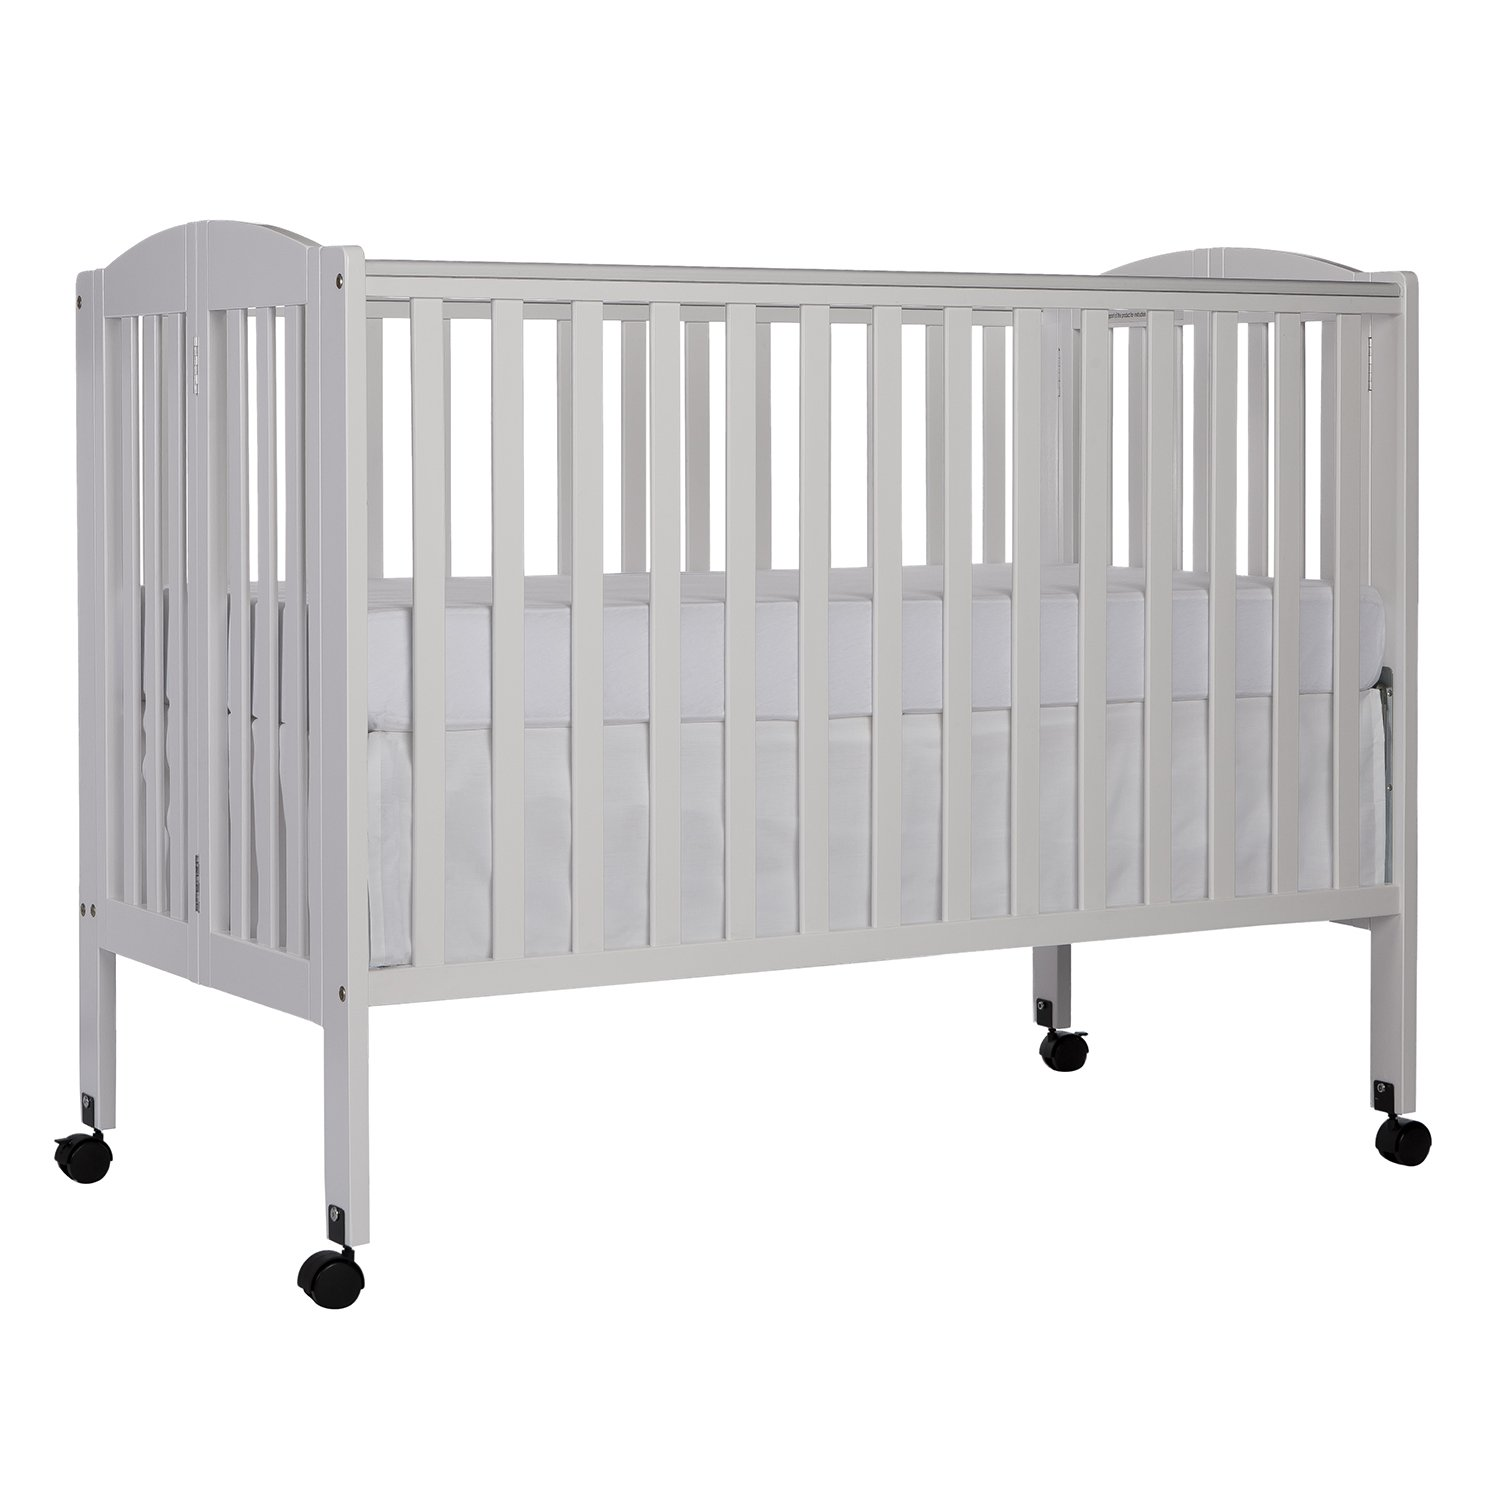 Dream On Me Full Size 2 in 1 Folding Stationary Side Crib, White by Dream On Me